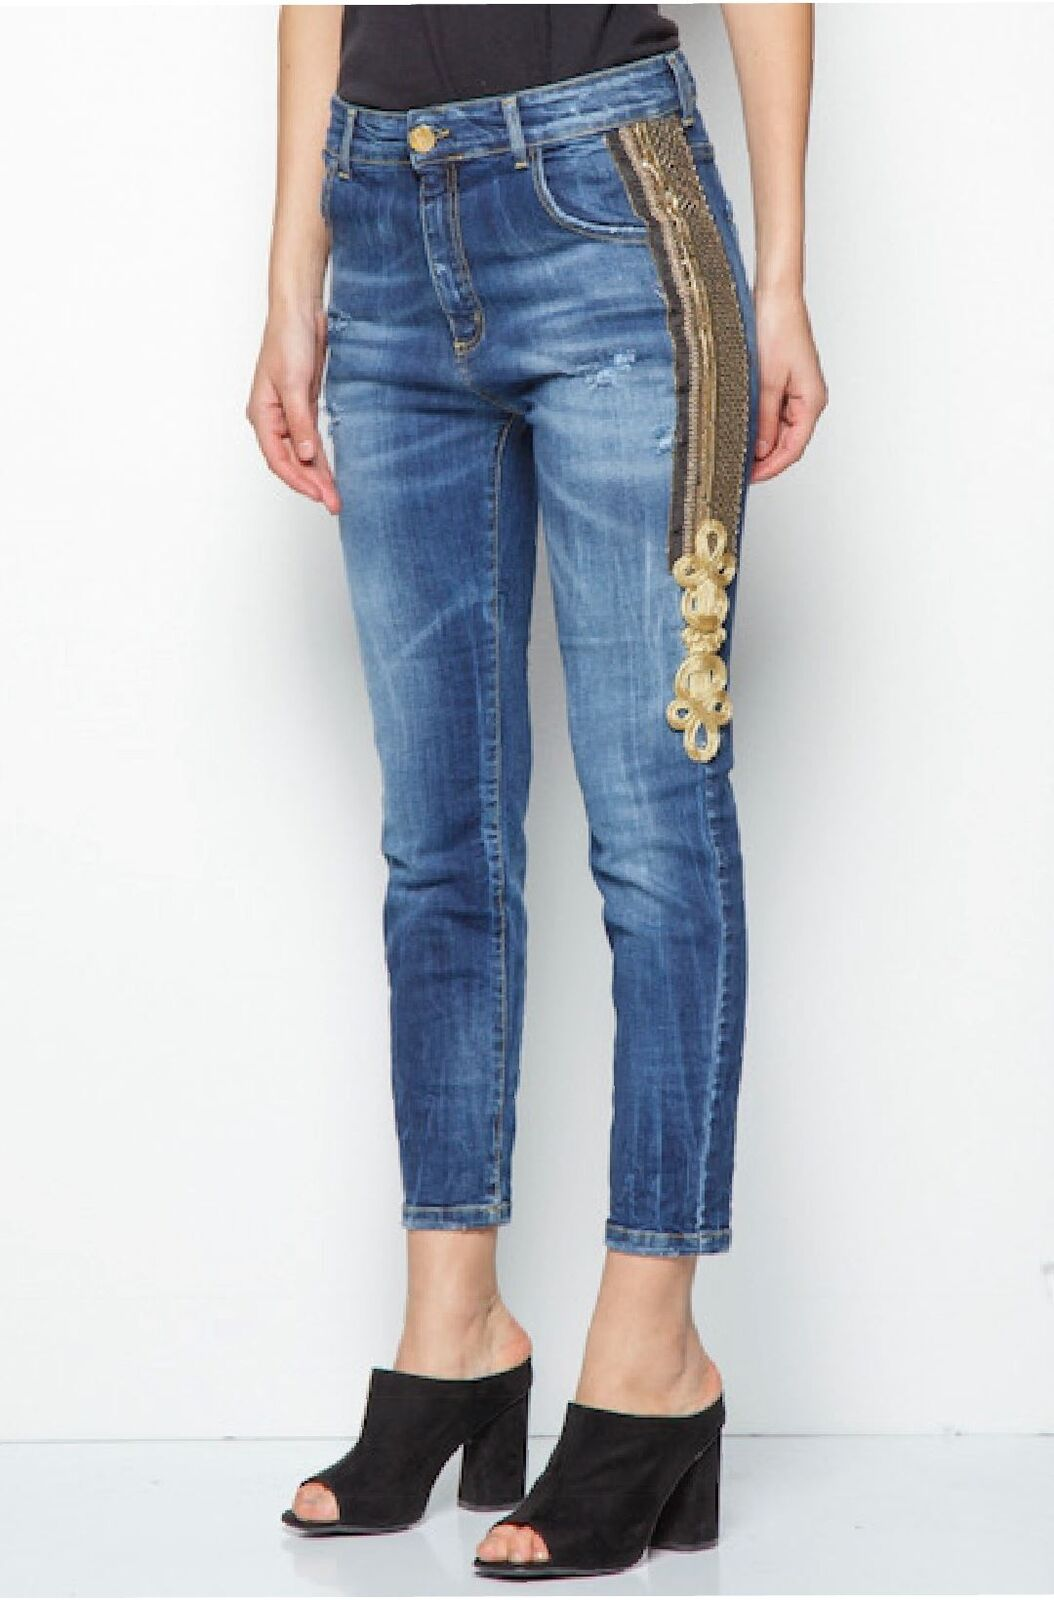 Pantalone Jeans  Revise bluee vibers By Belen Rodriguez women abbigliamento